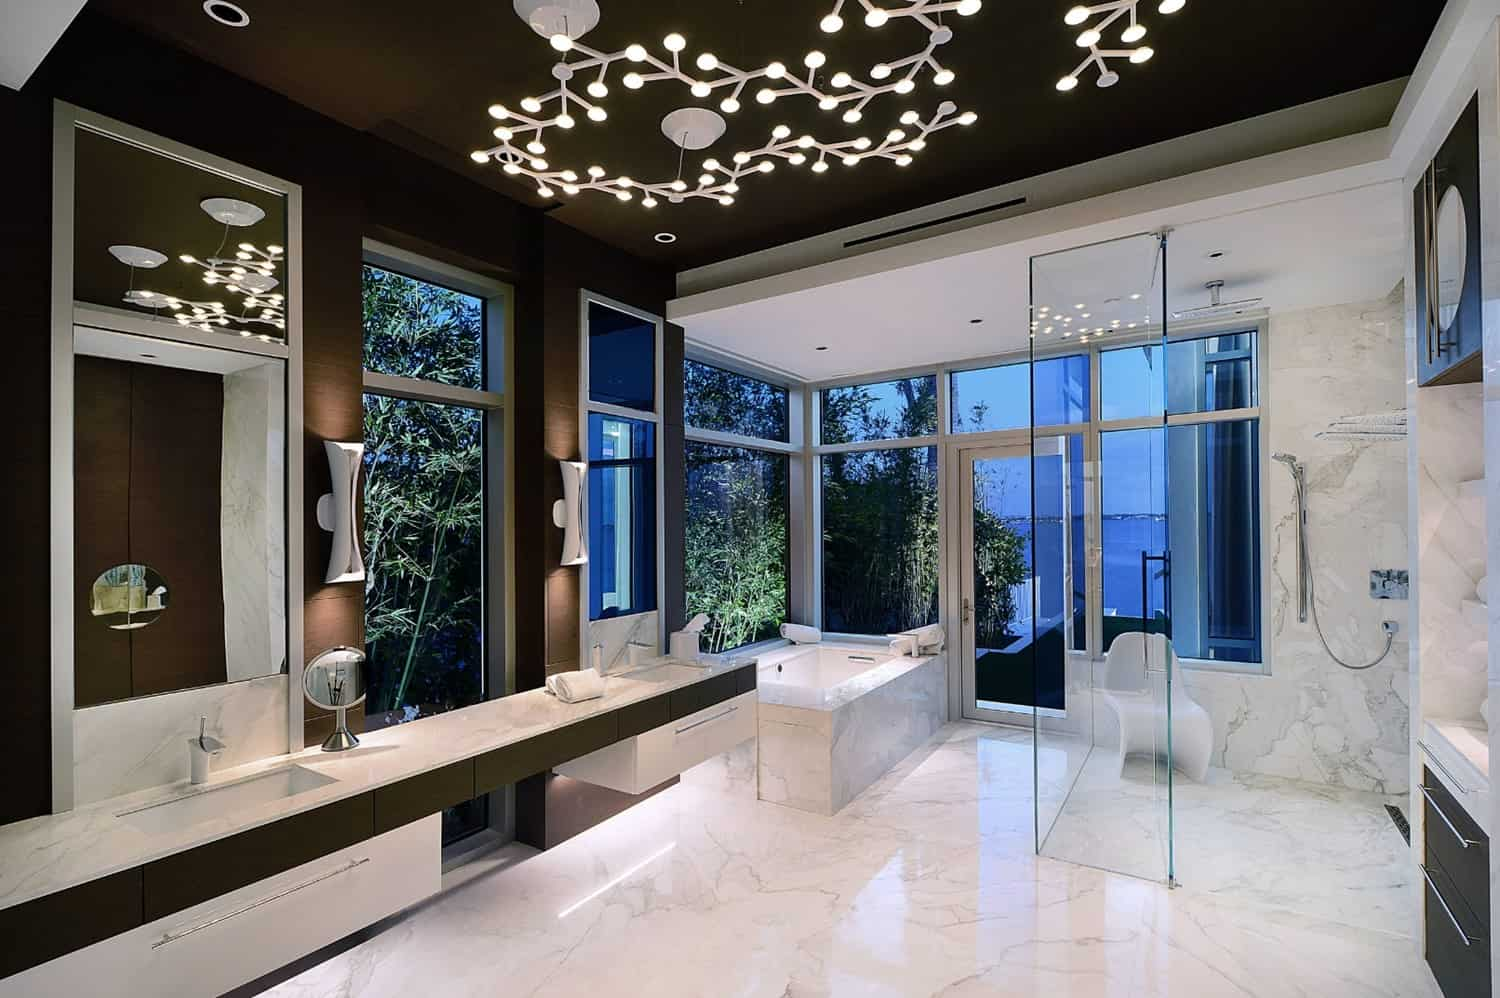 BRING STYLE WITH LIGHTING FIXTURES